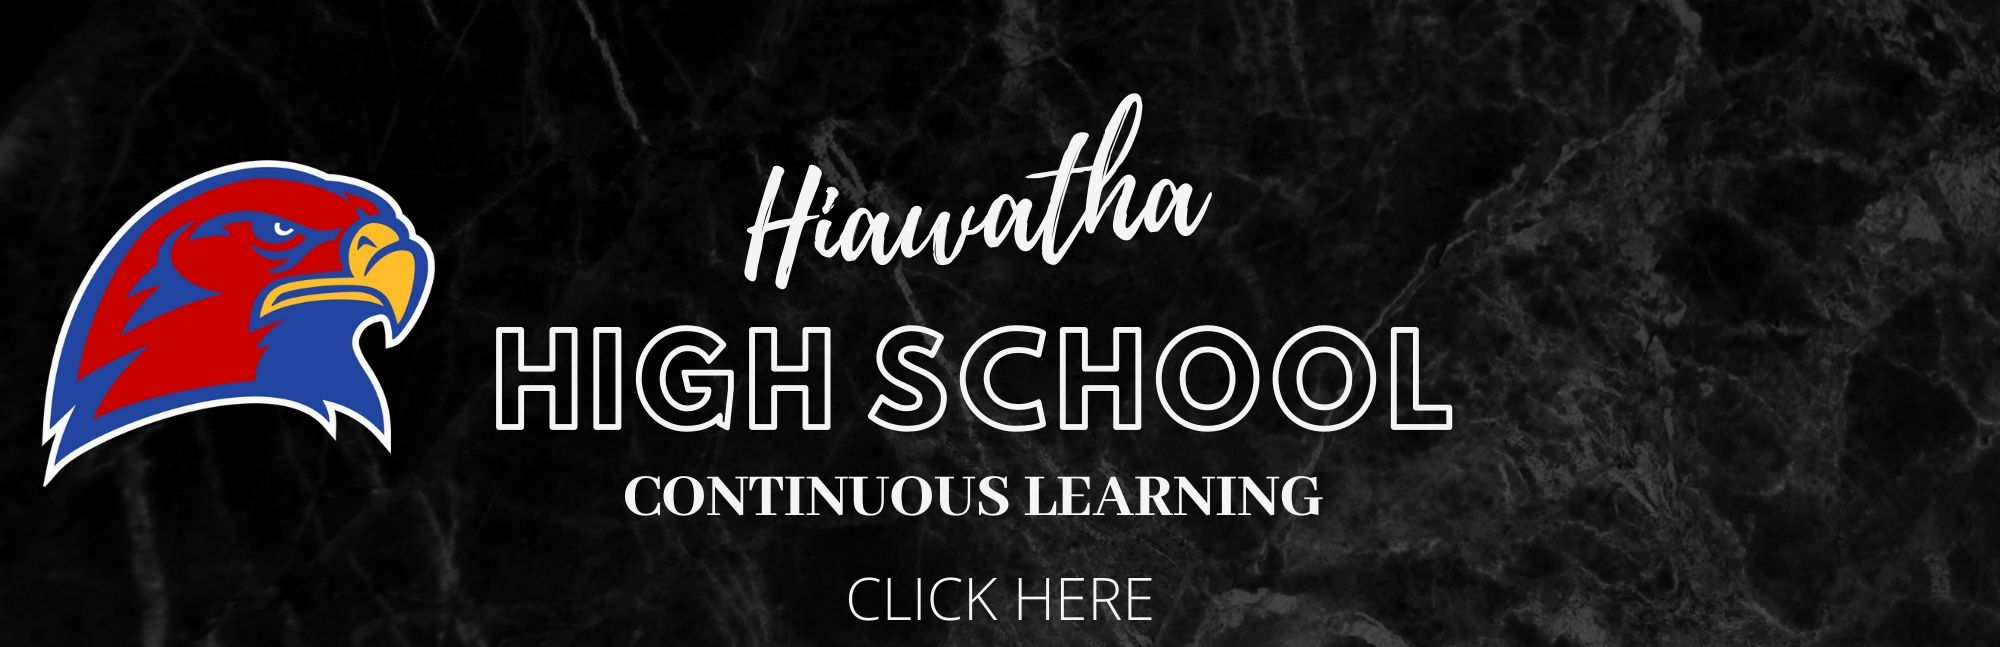 Hiawatha High School Continuous Learning